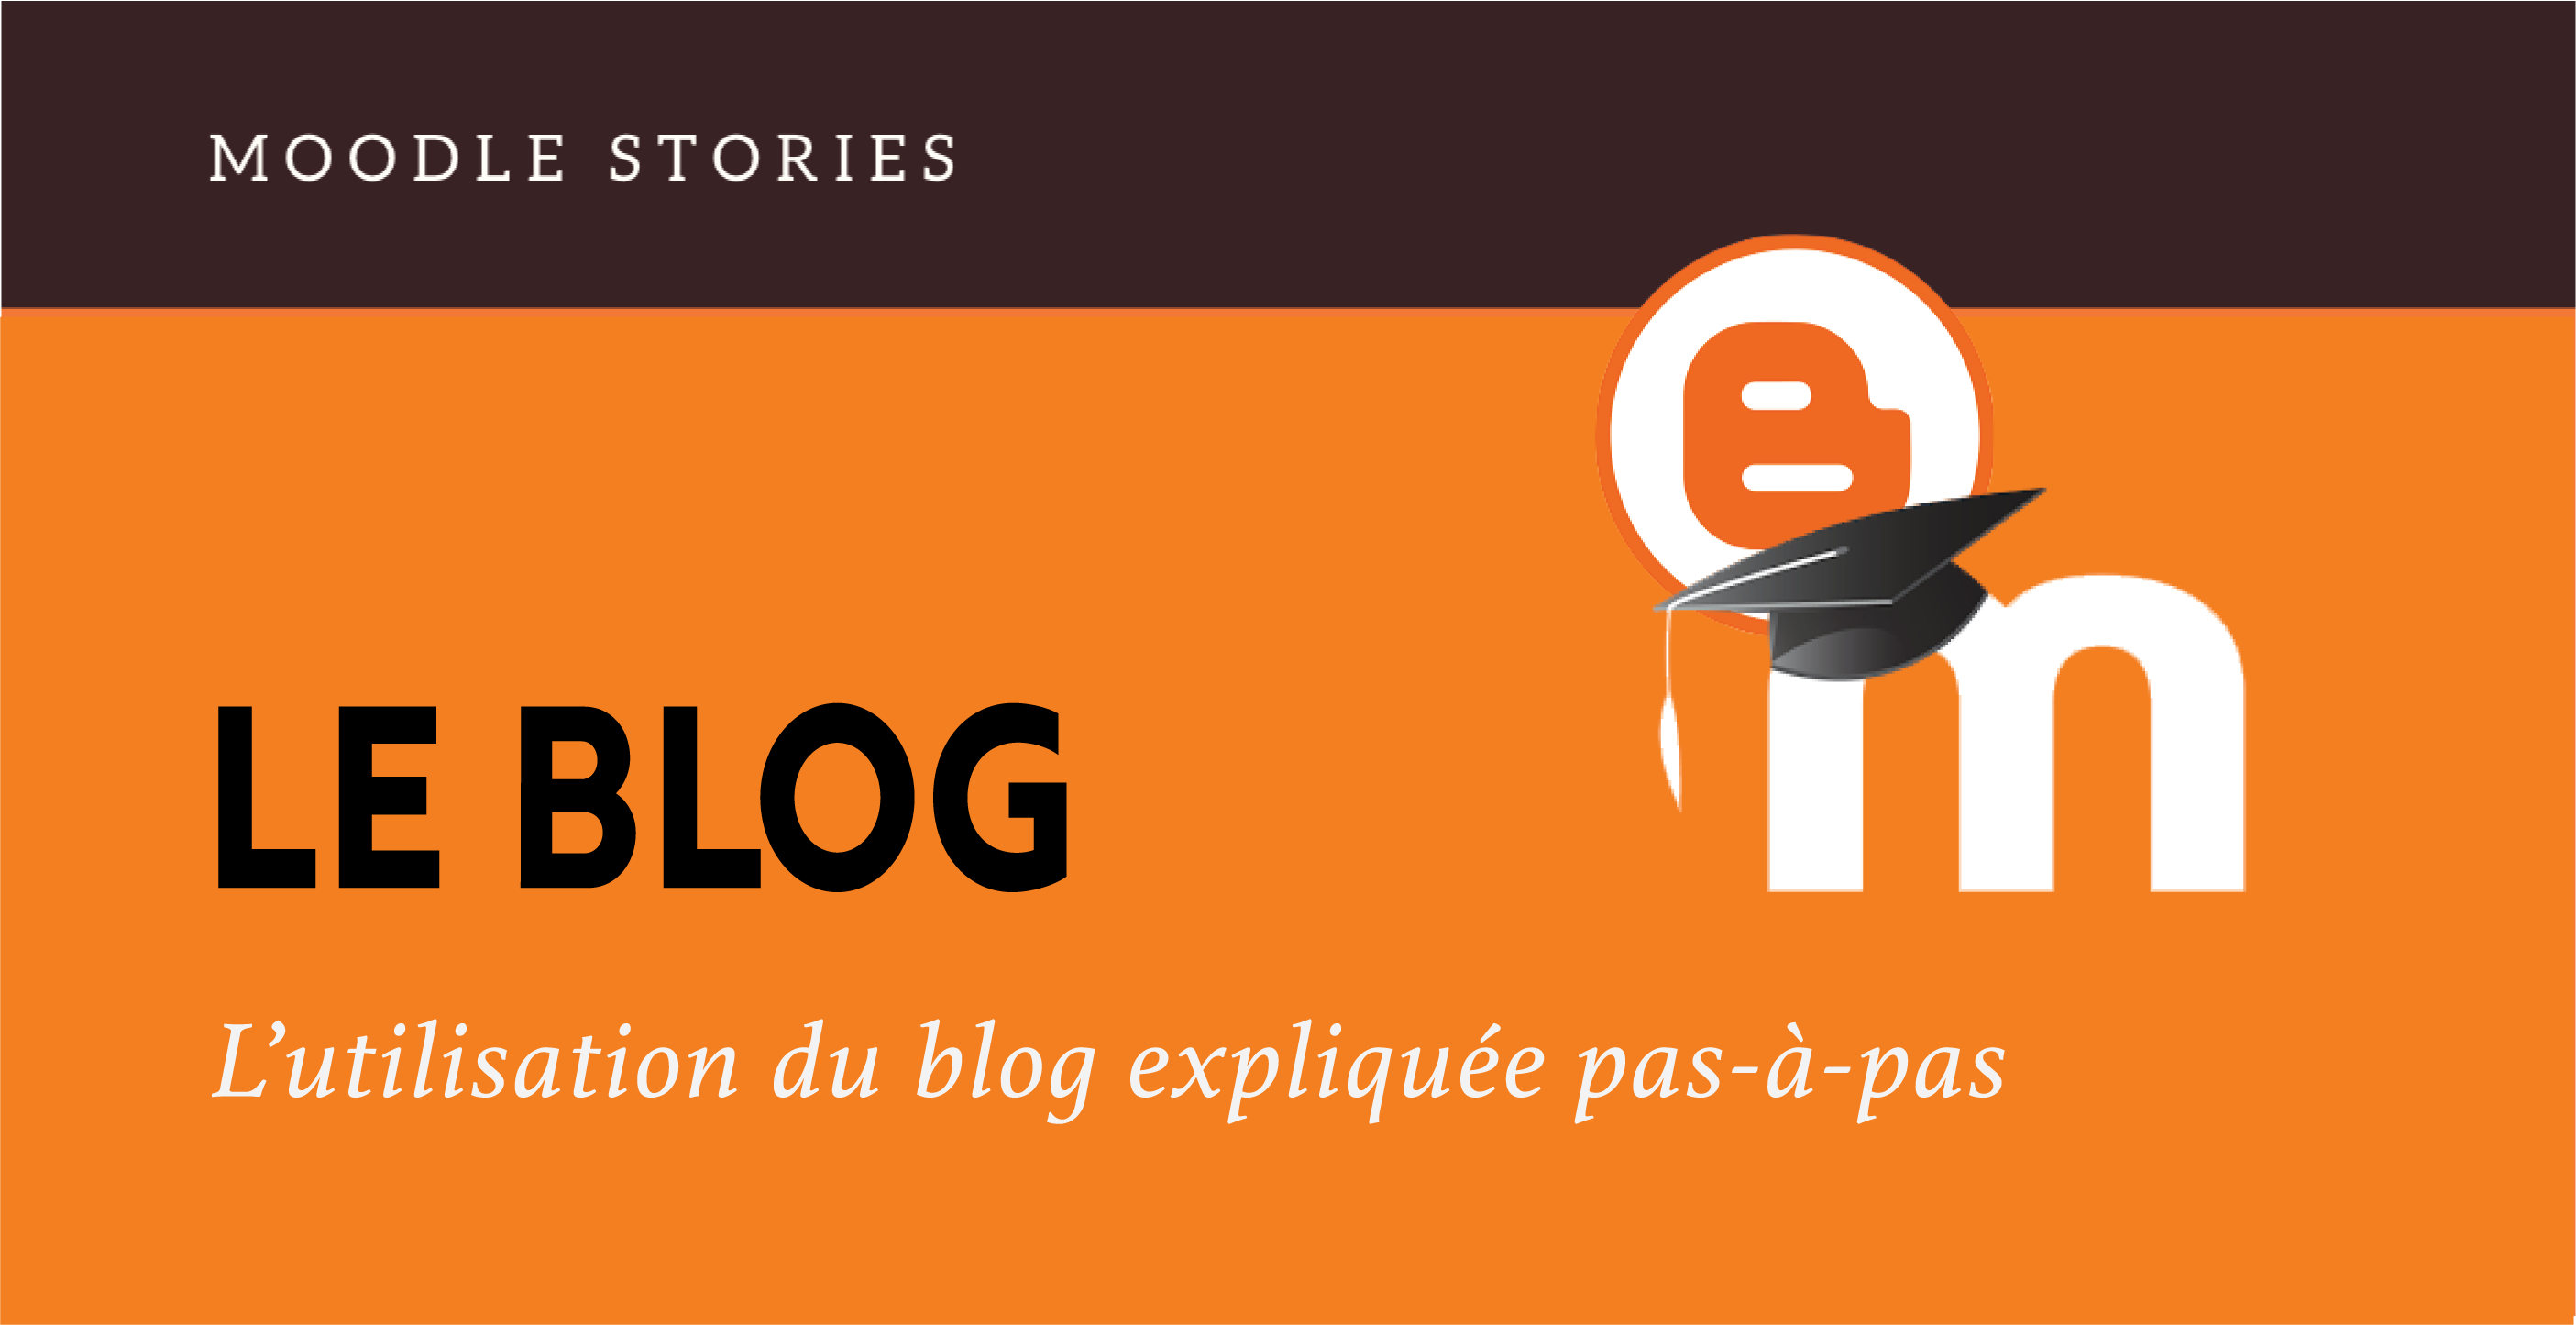 You are currently viewing Moodle stories : le blog [2021]